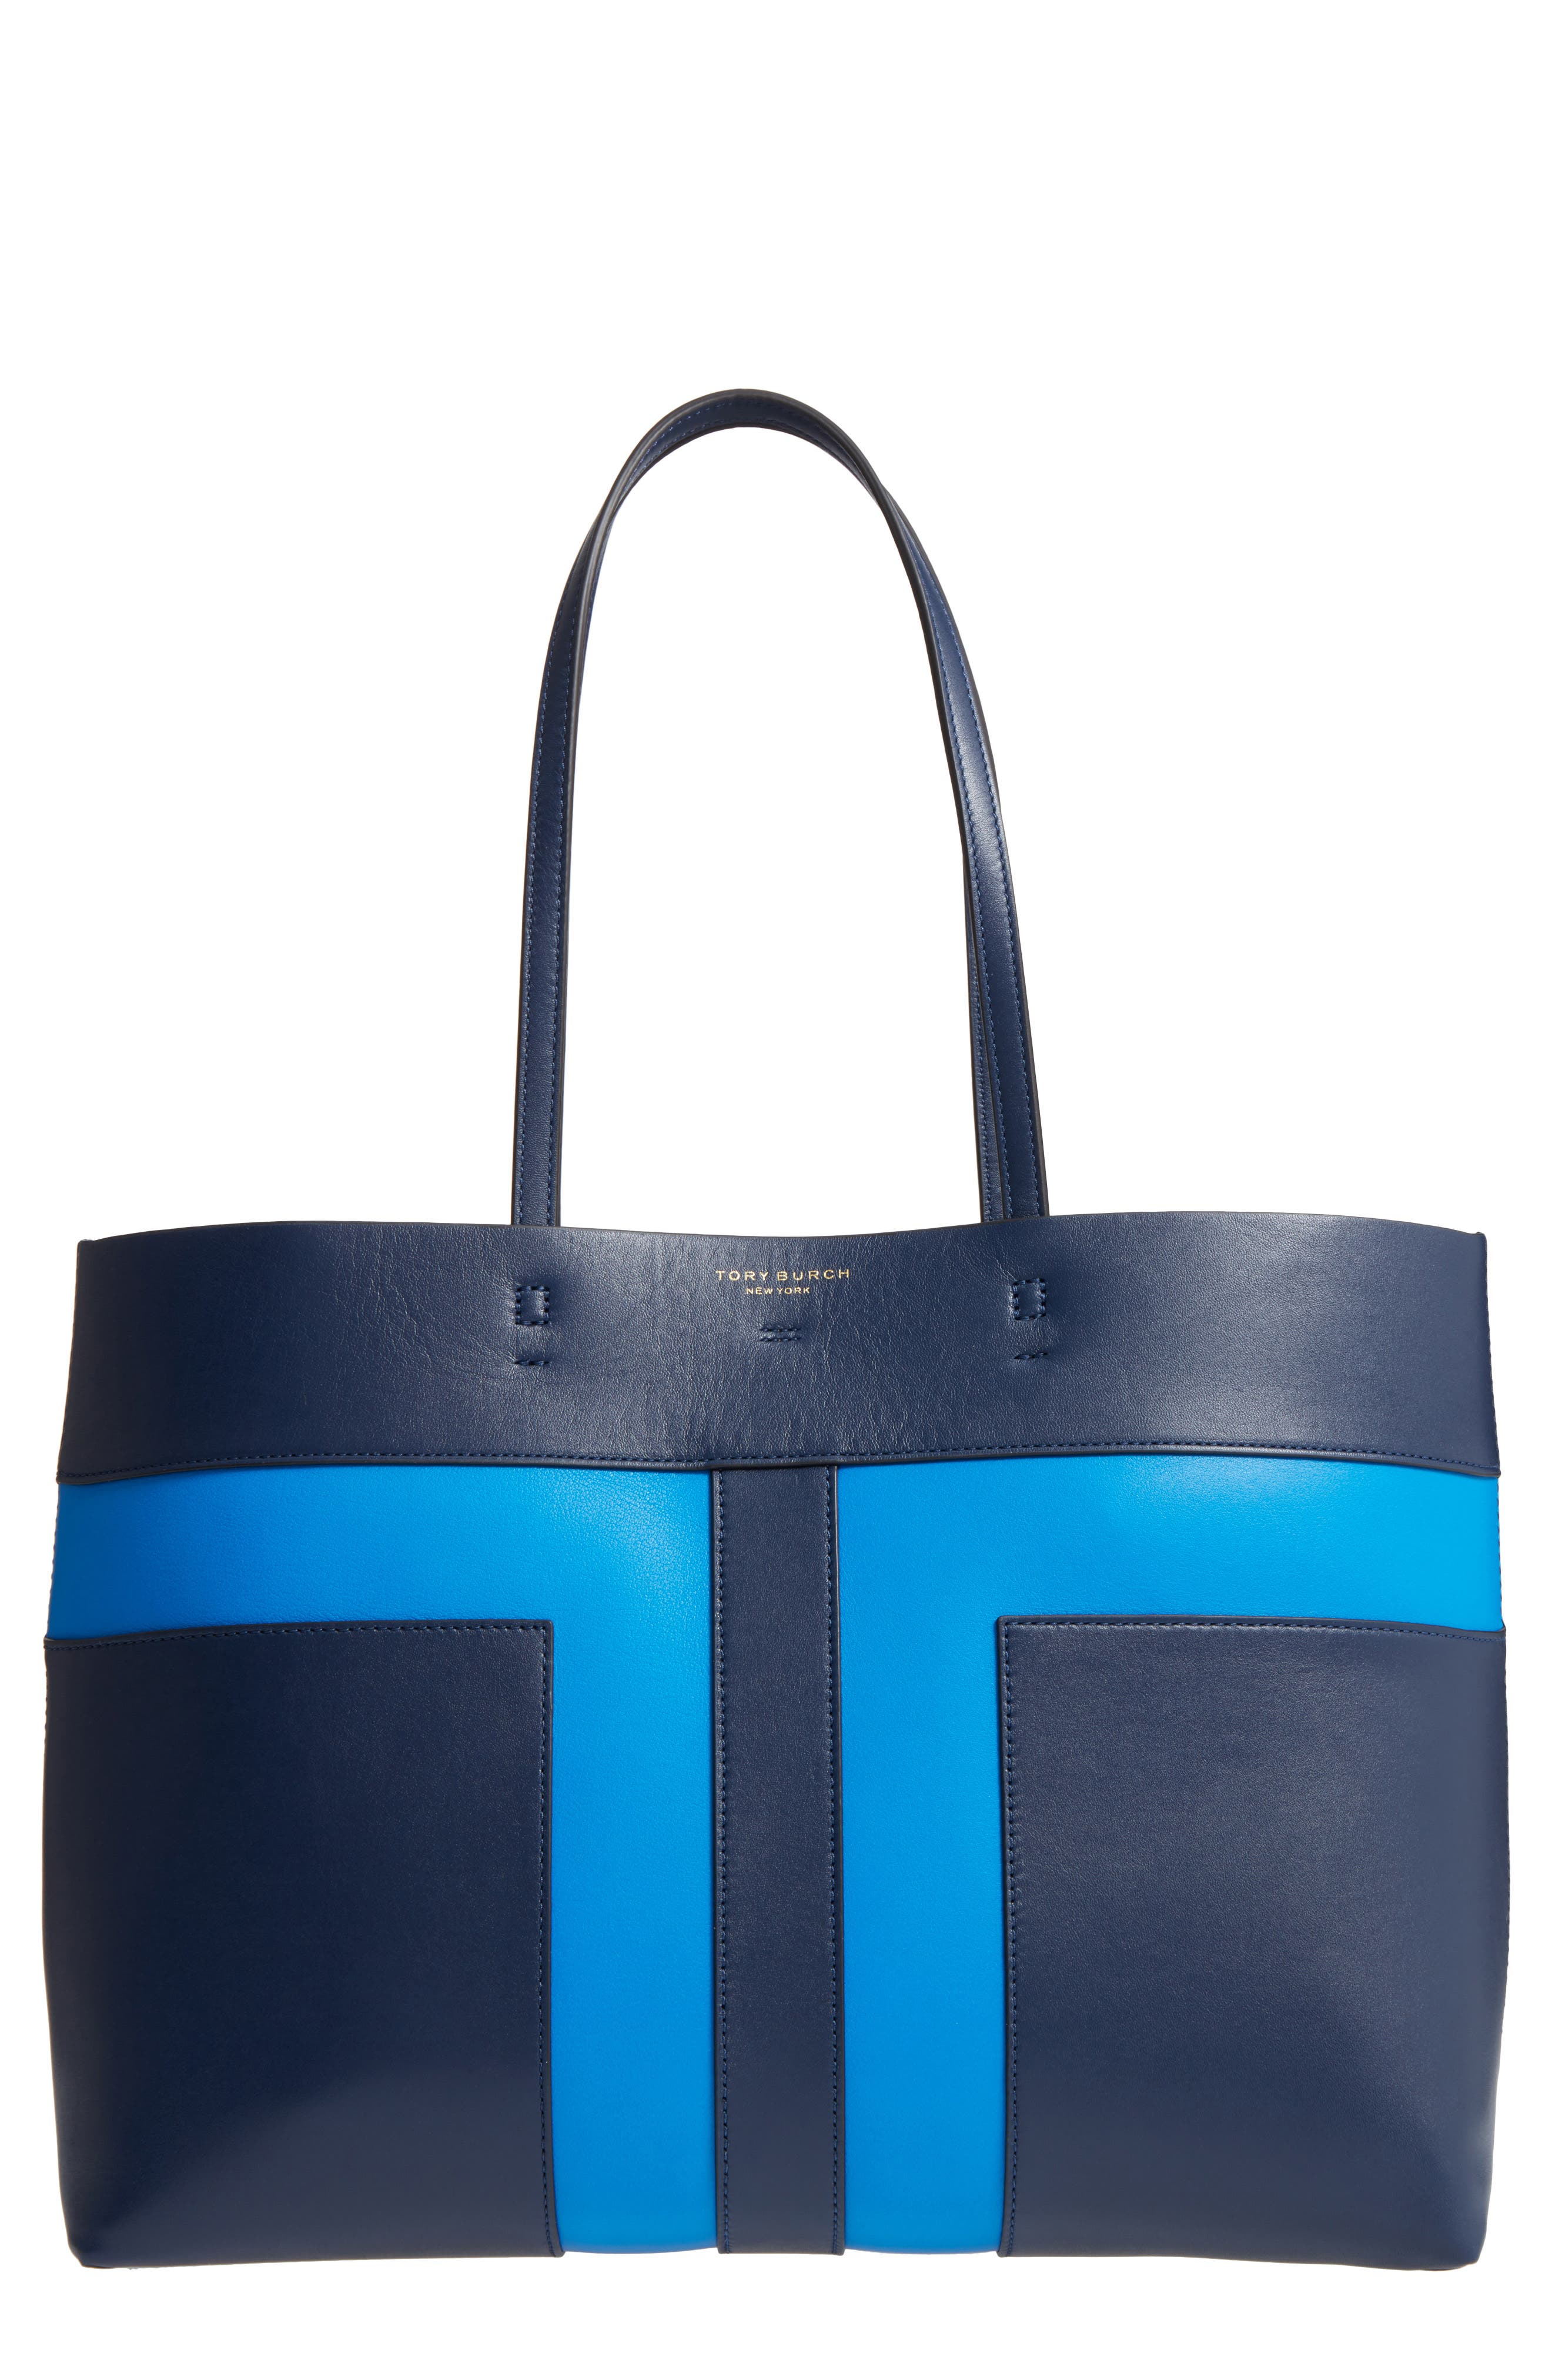 Block T Leather Tote,                         Main,                         color, Royal Navy/ Galleria Blue